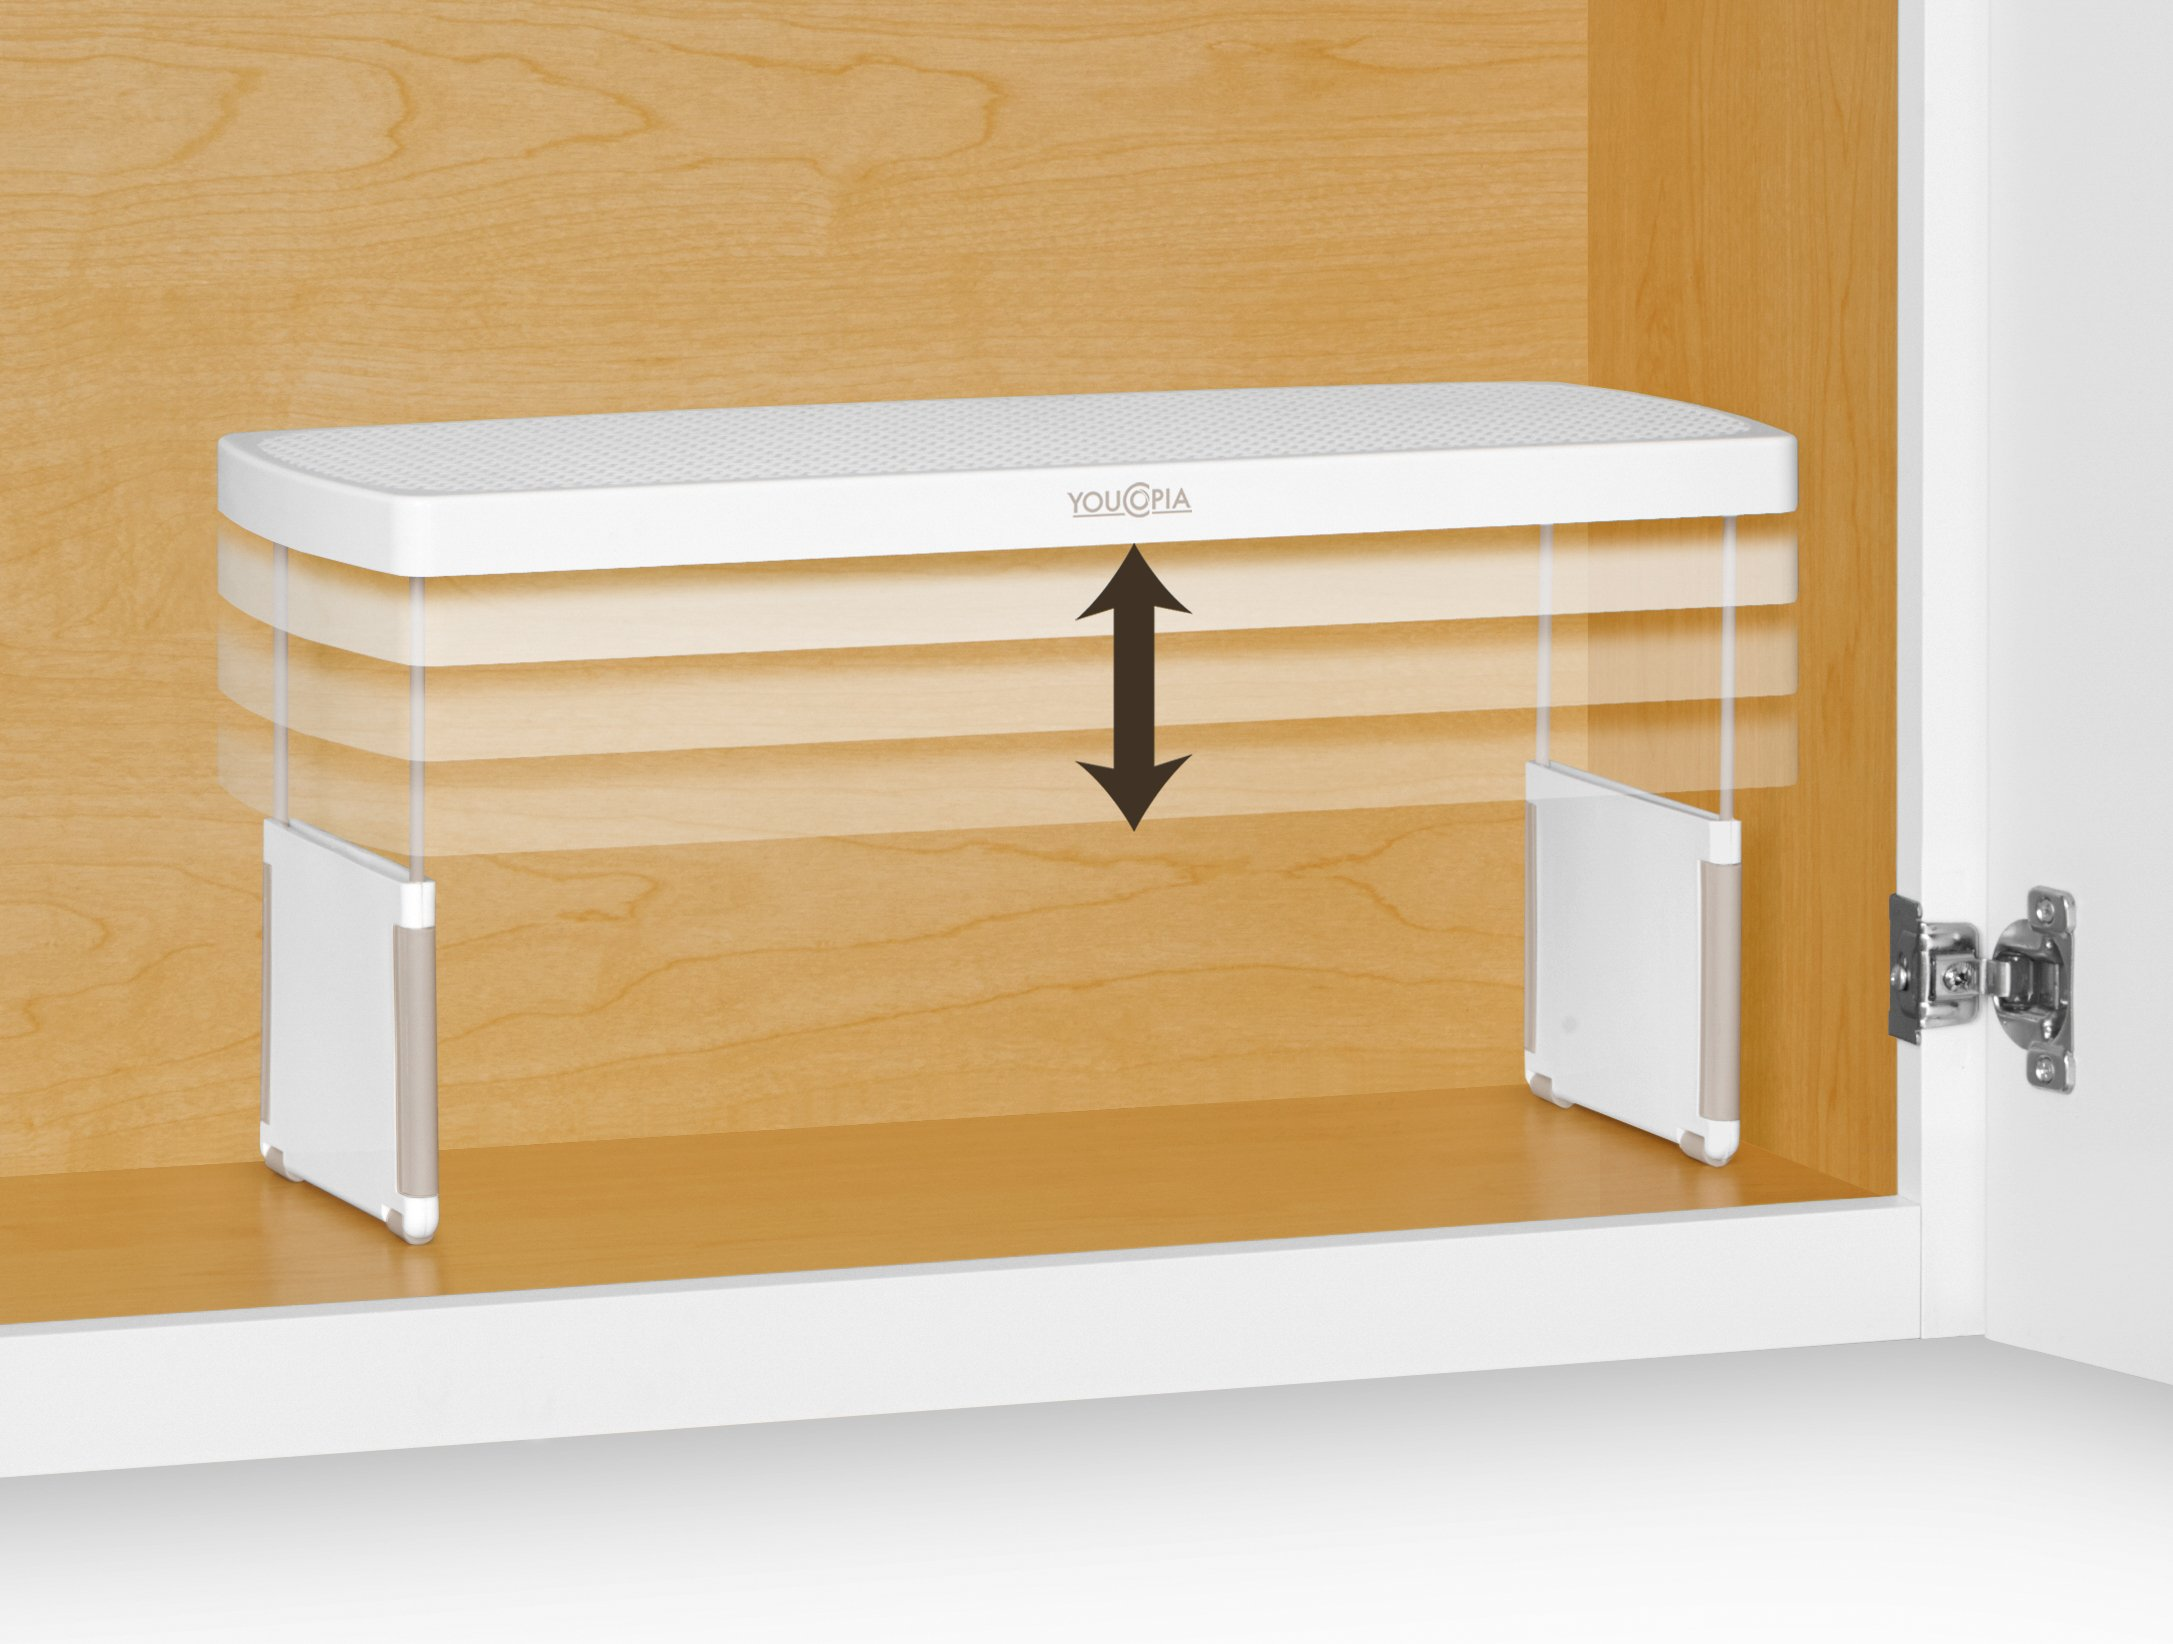 YouCopia StoreMore Height Expandable Kitchen Cabinet Shelf Organizer, 17-Inches